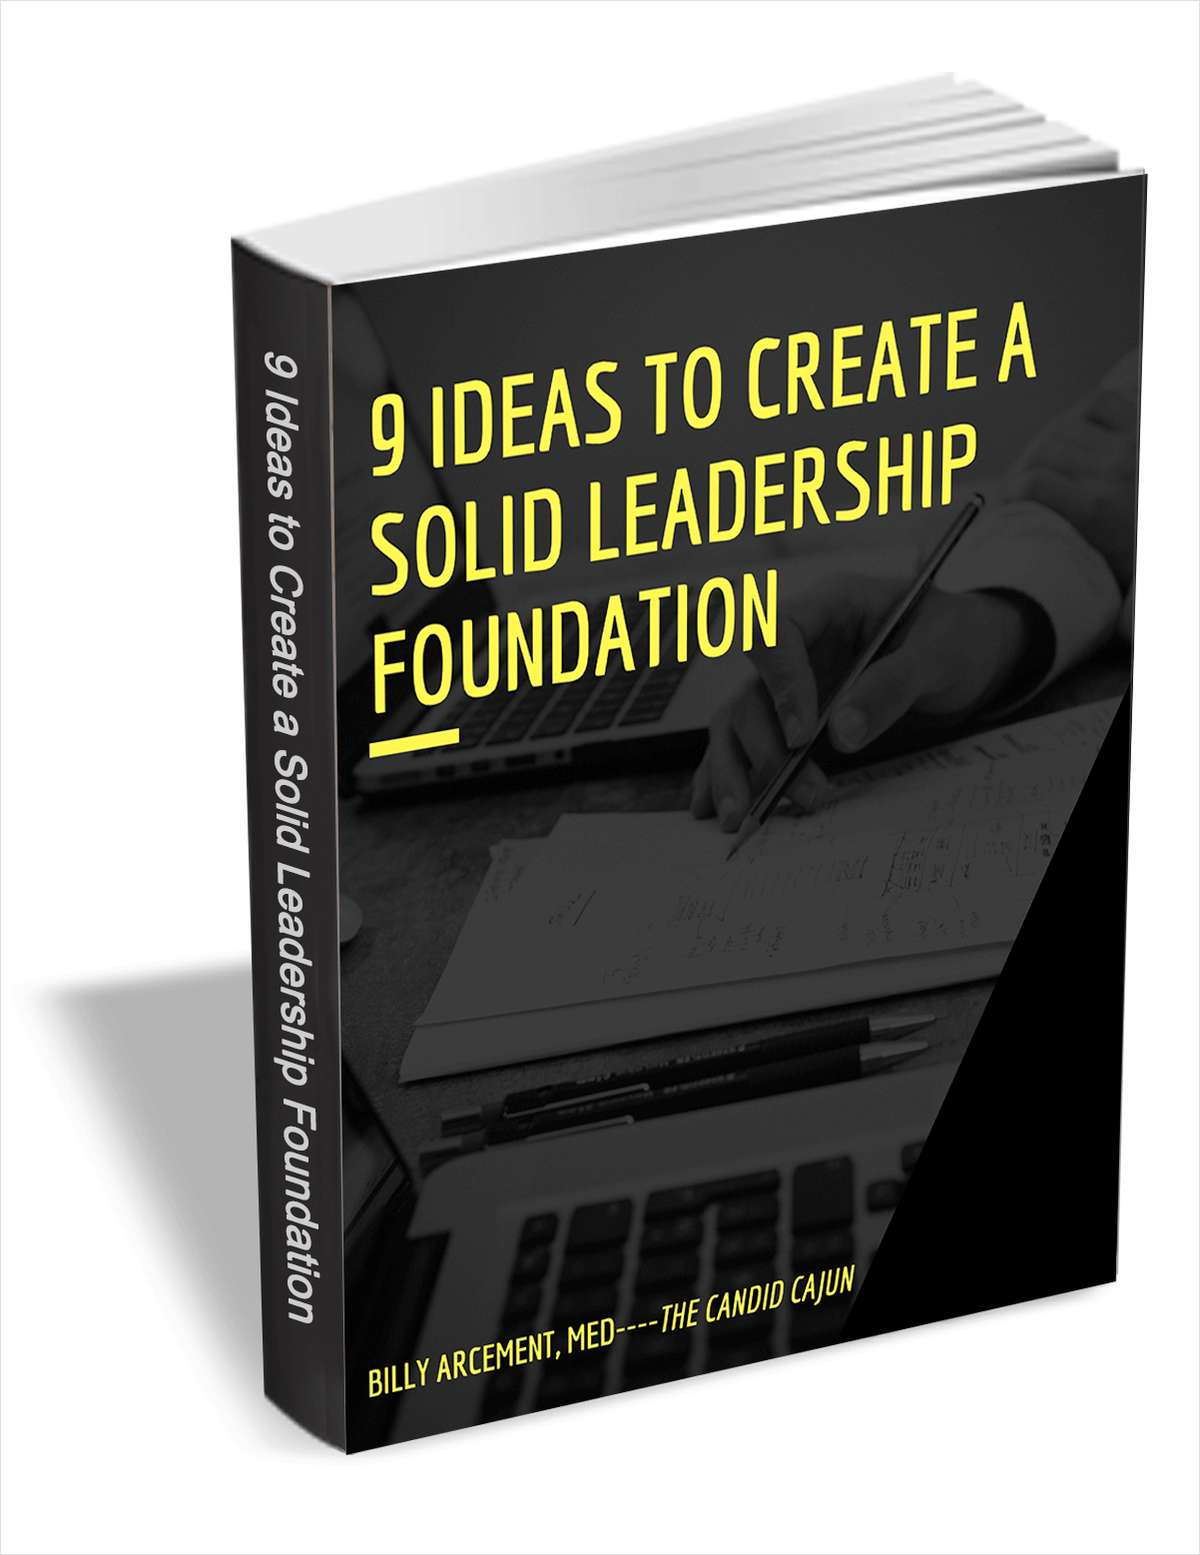 9 Ideas to Create a Solid Leadership Foundation